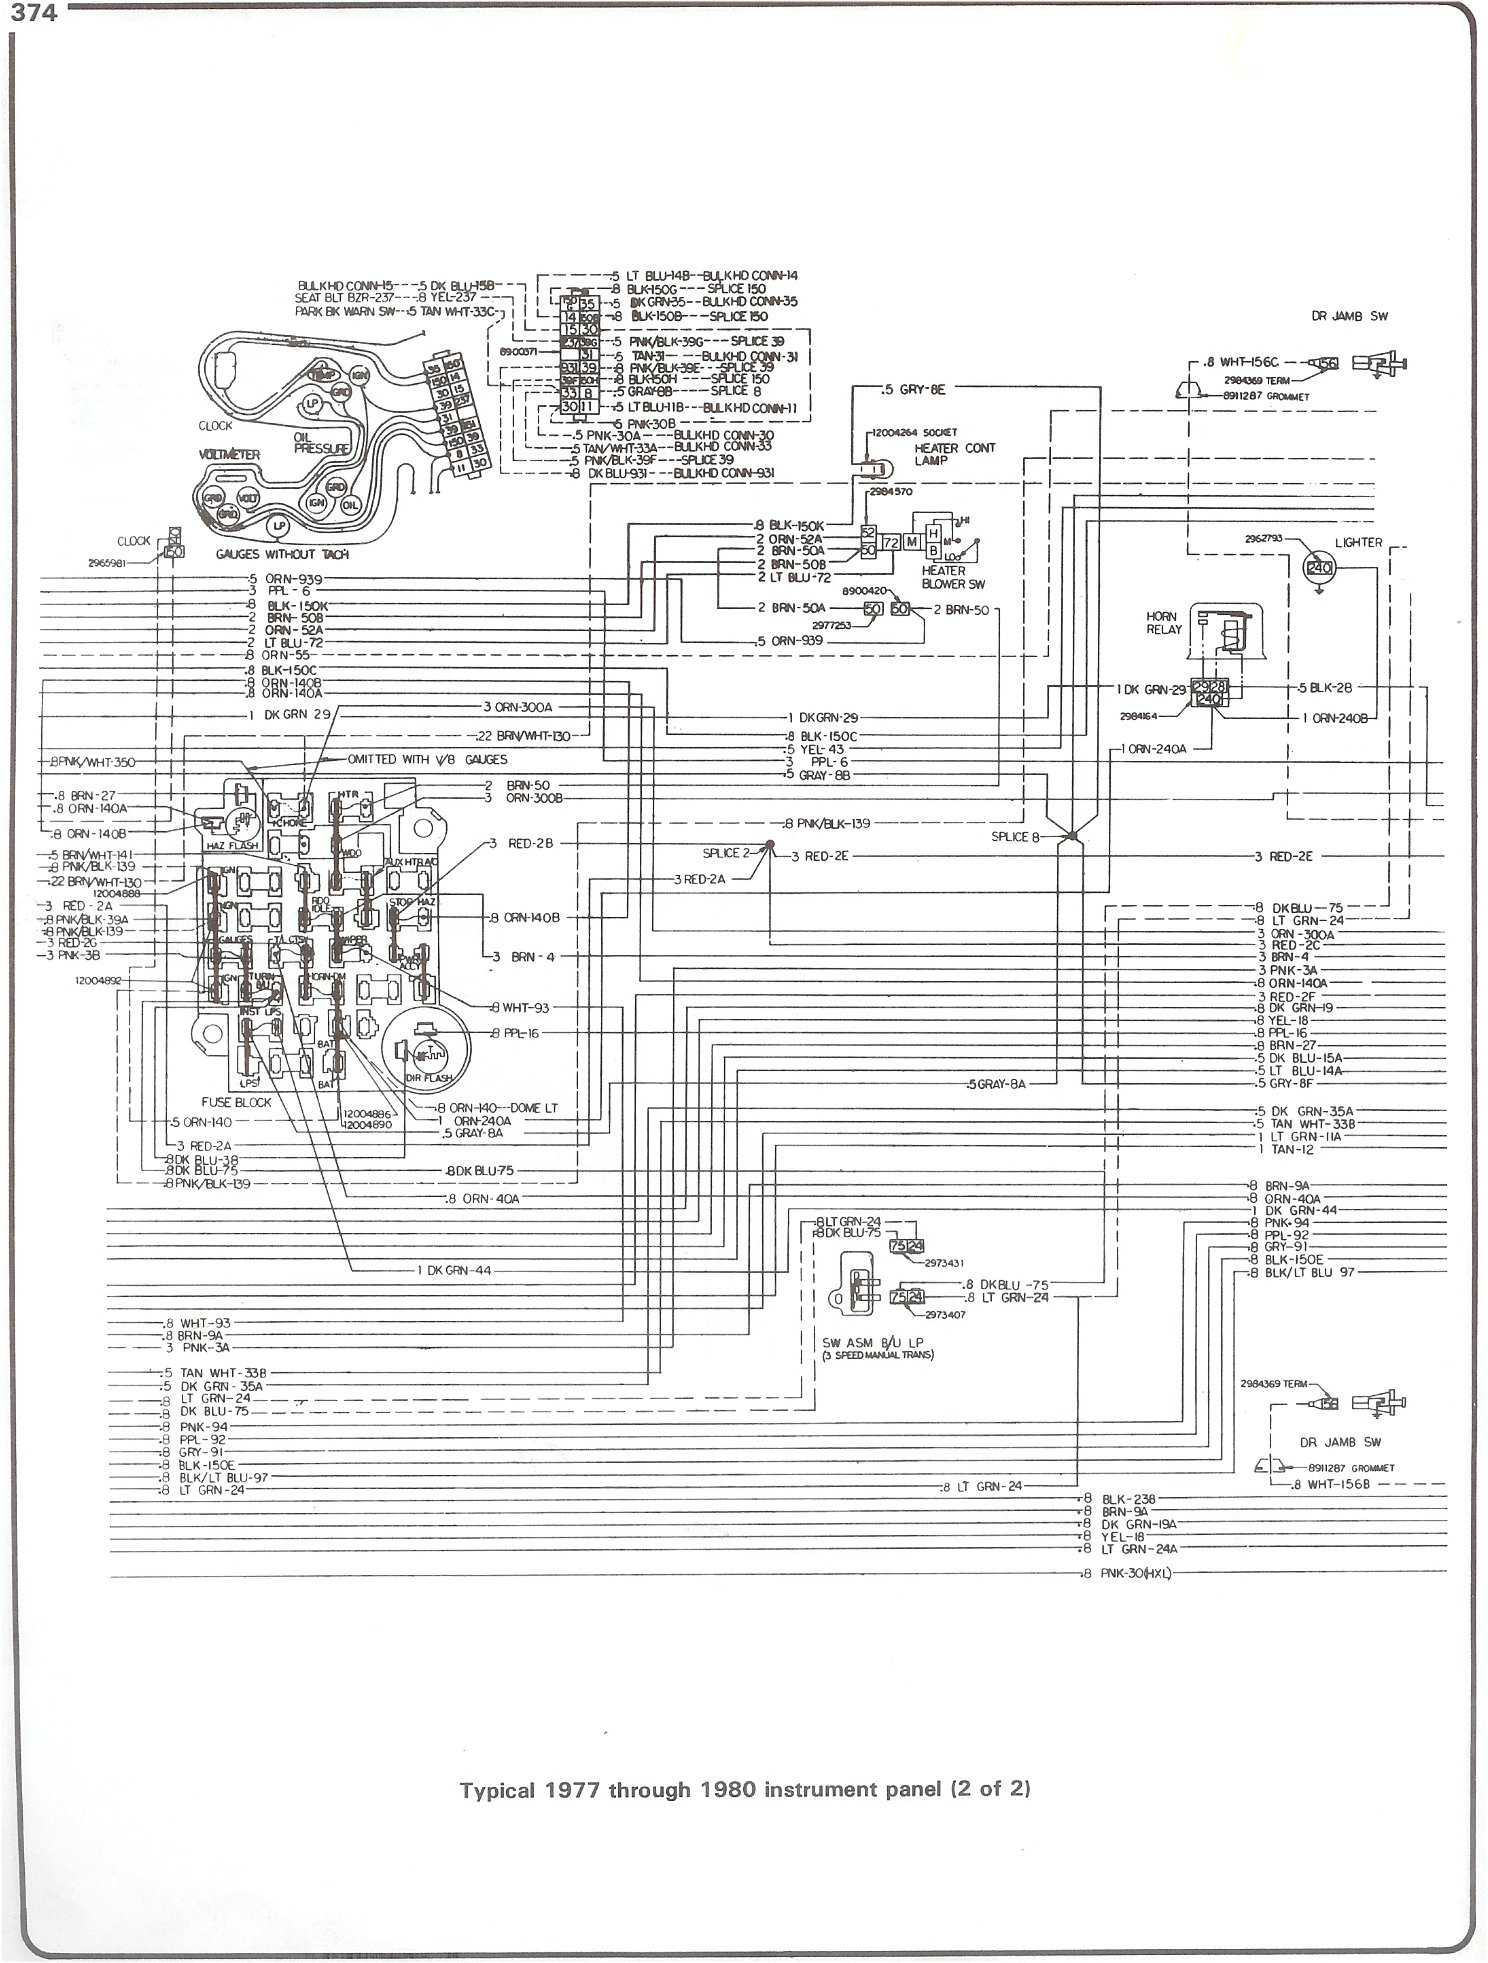 77 80_instrument_pg2 complete 73 87 wiring diagrams 73-87 Chevy Wiring Diagrams Site at honlapkeszites.co